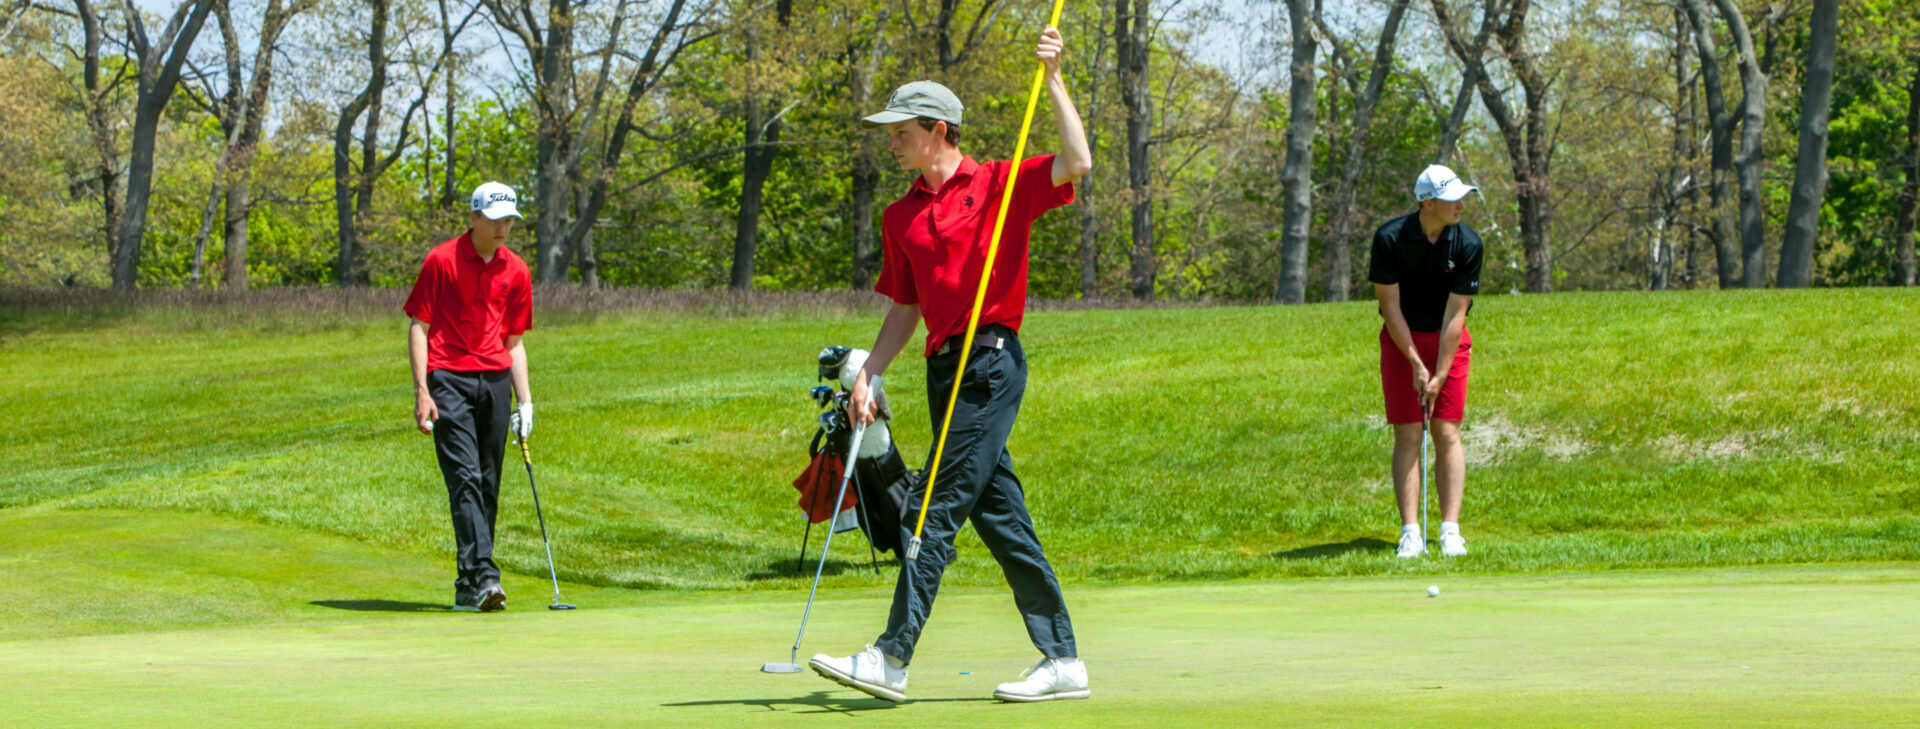 Whitehall golfer Steve Cullen topping the conference again, ready to make the most of his final postseason opportunity